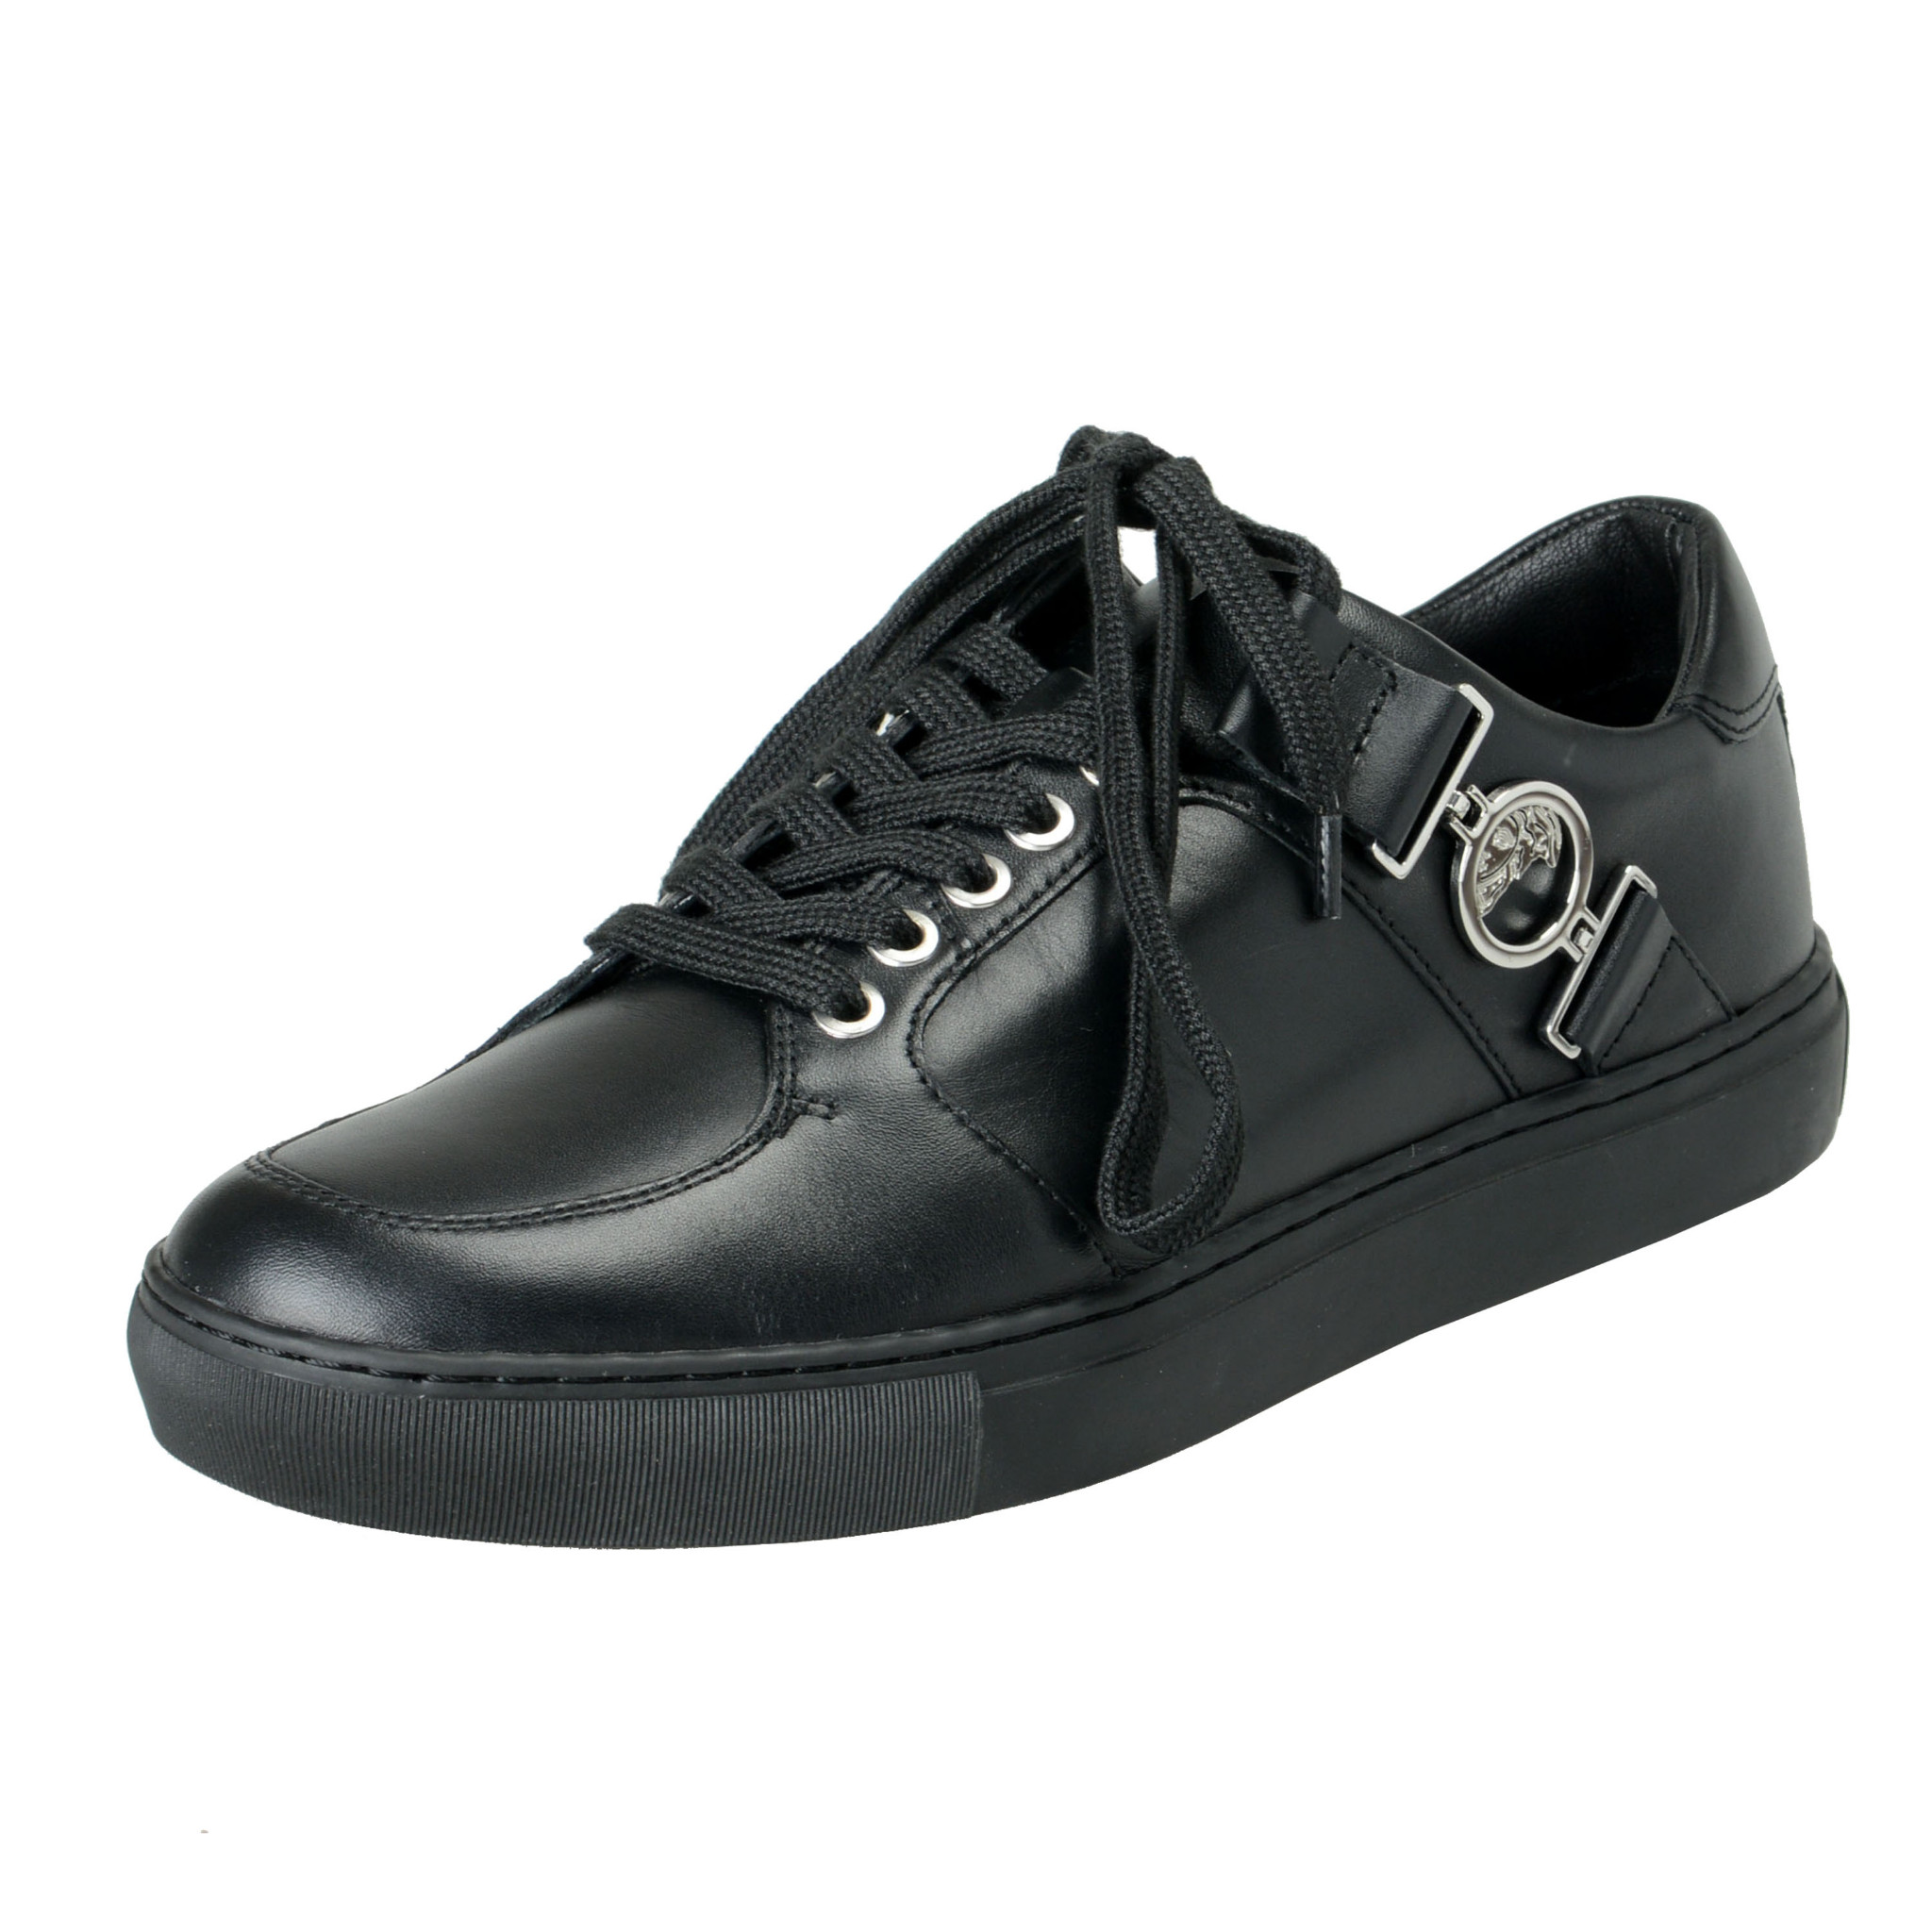 Black Leather Fashion Sneakers Shoes 6